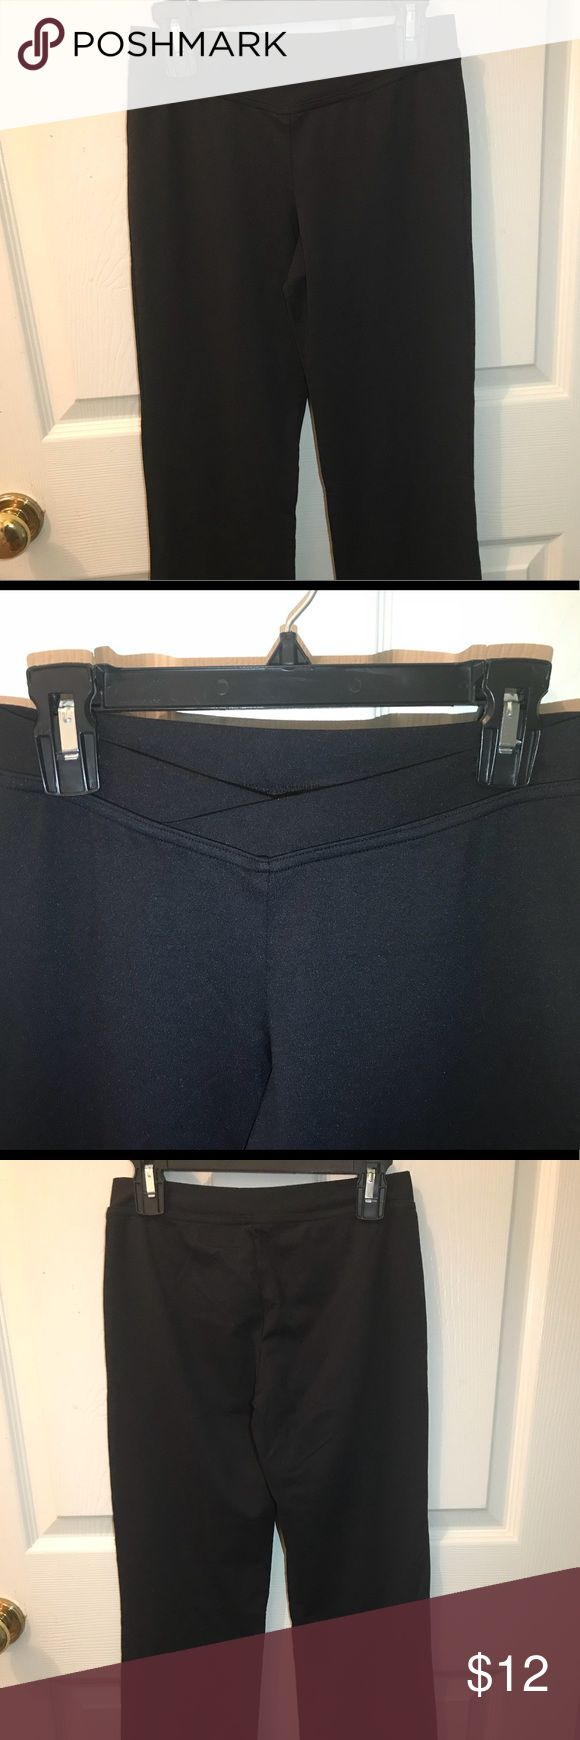 "Bloch Jazz Pants These are black jazz pants that I bought about 3 years ago and they are a size small.  They are the brand ""Bloch"" and have a v-front waist, as shown in the last photo.  There is a tiny white stain on the pants, as shown in the last photo.  Offers are welcome! Just trying to get rid of it 😊 Bloch Pants"